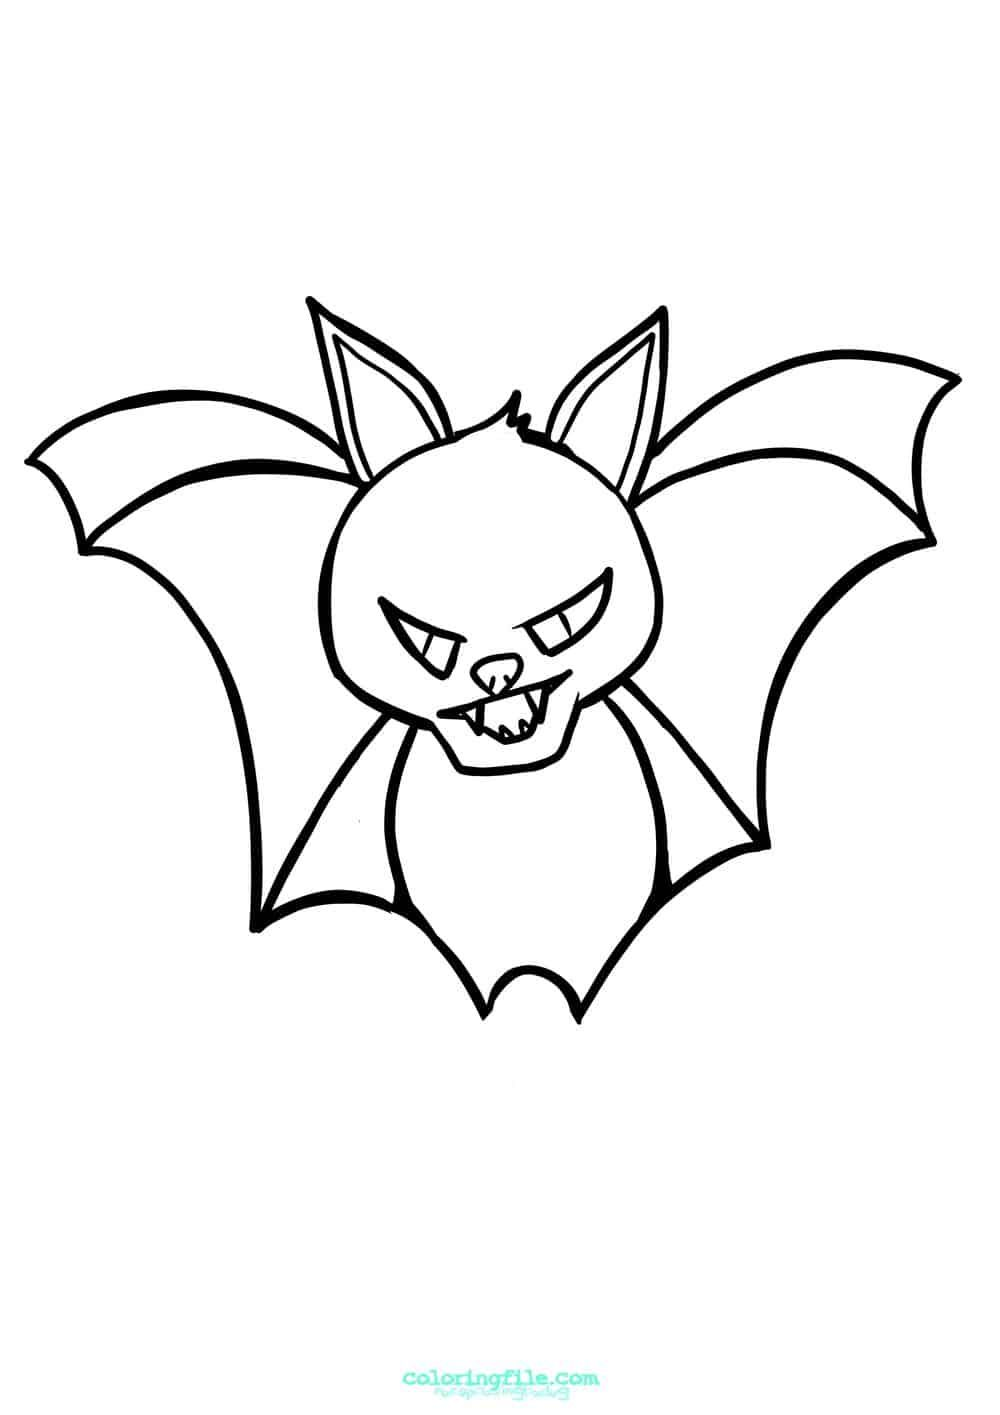 Halloween Baby Bat Coloring Page Halloween Coloring Pages Halloween Coloring Pages Printable Halloween Coloring